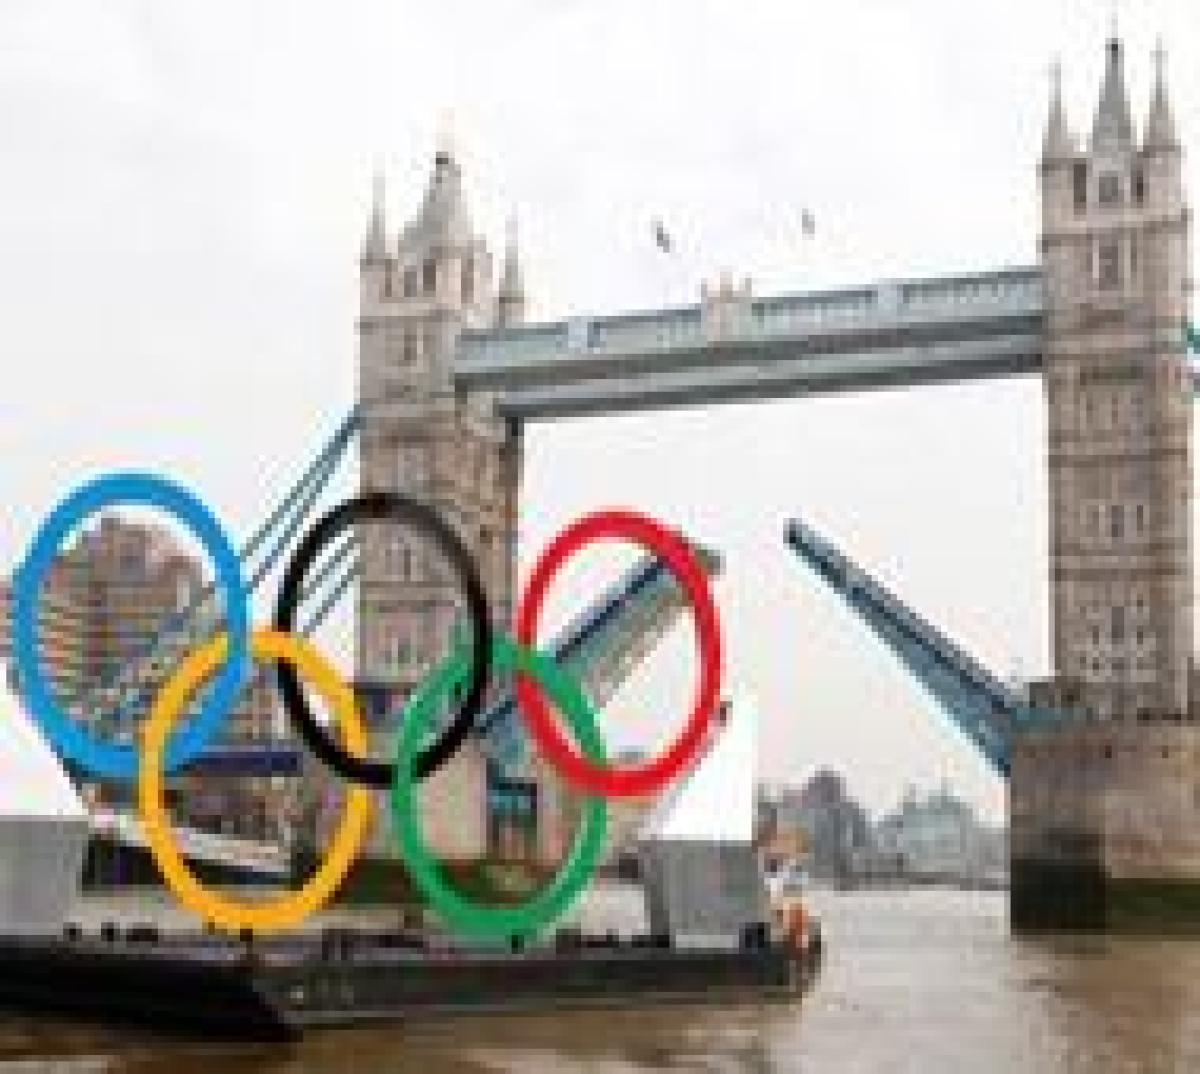 23 athletes test positive in London 2012 sample re-analysis